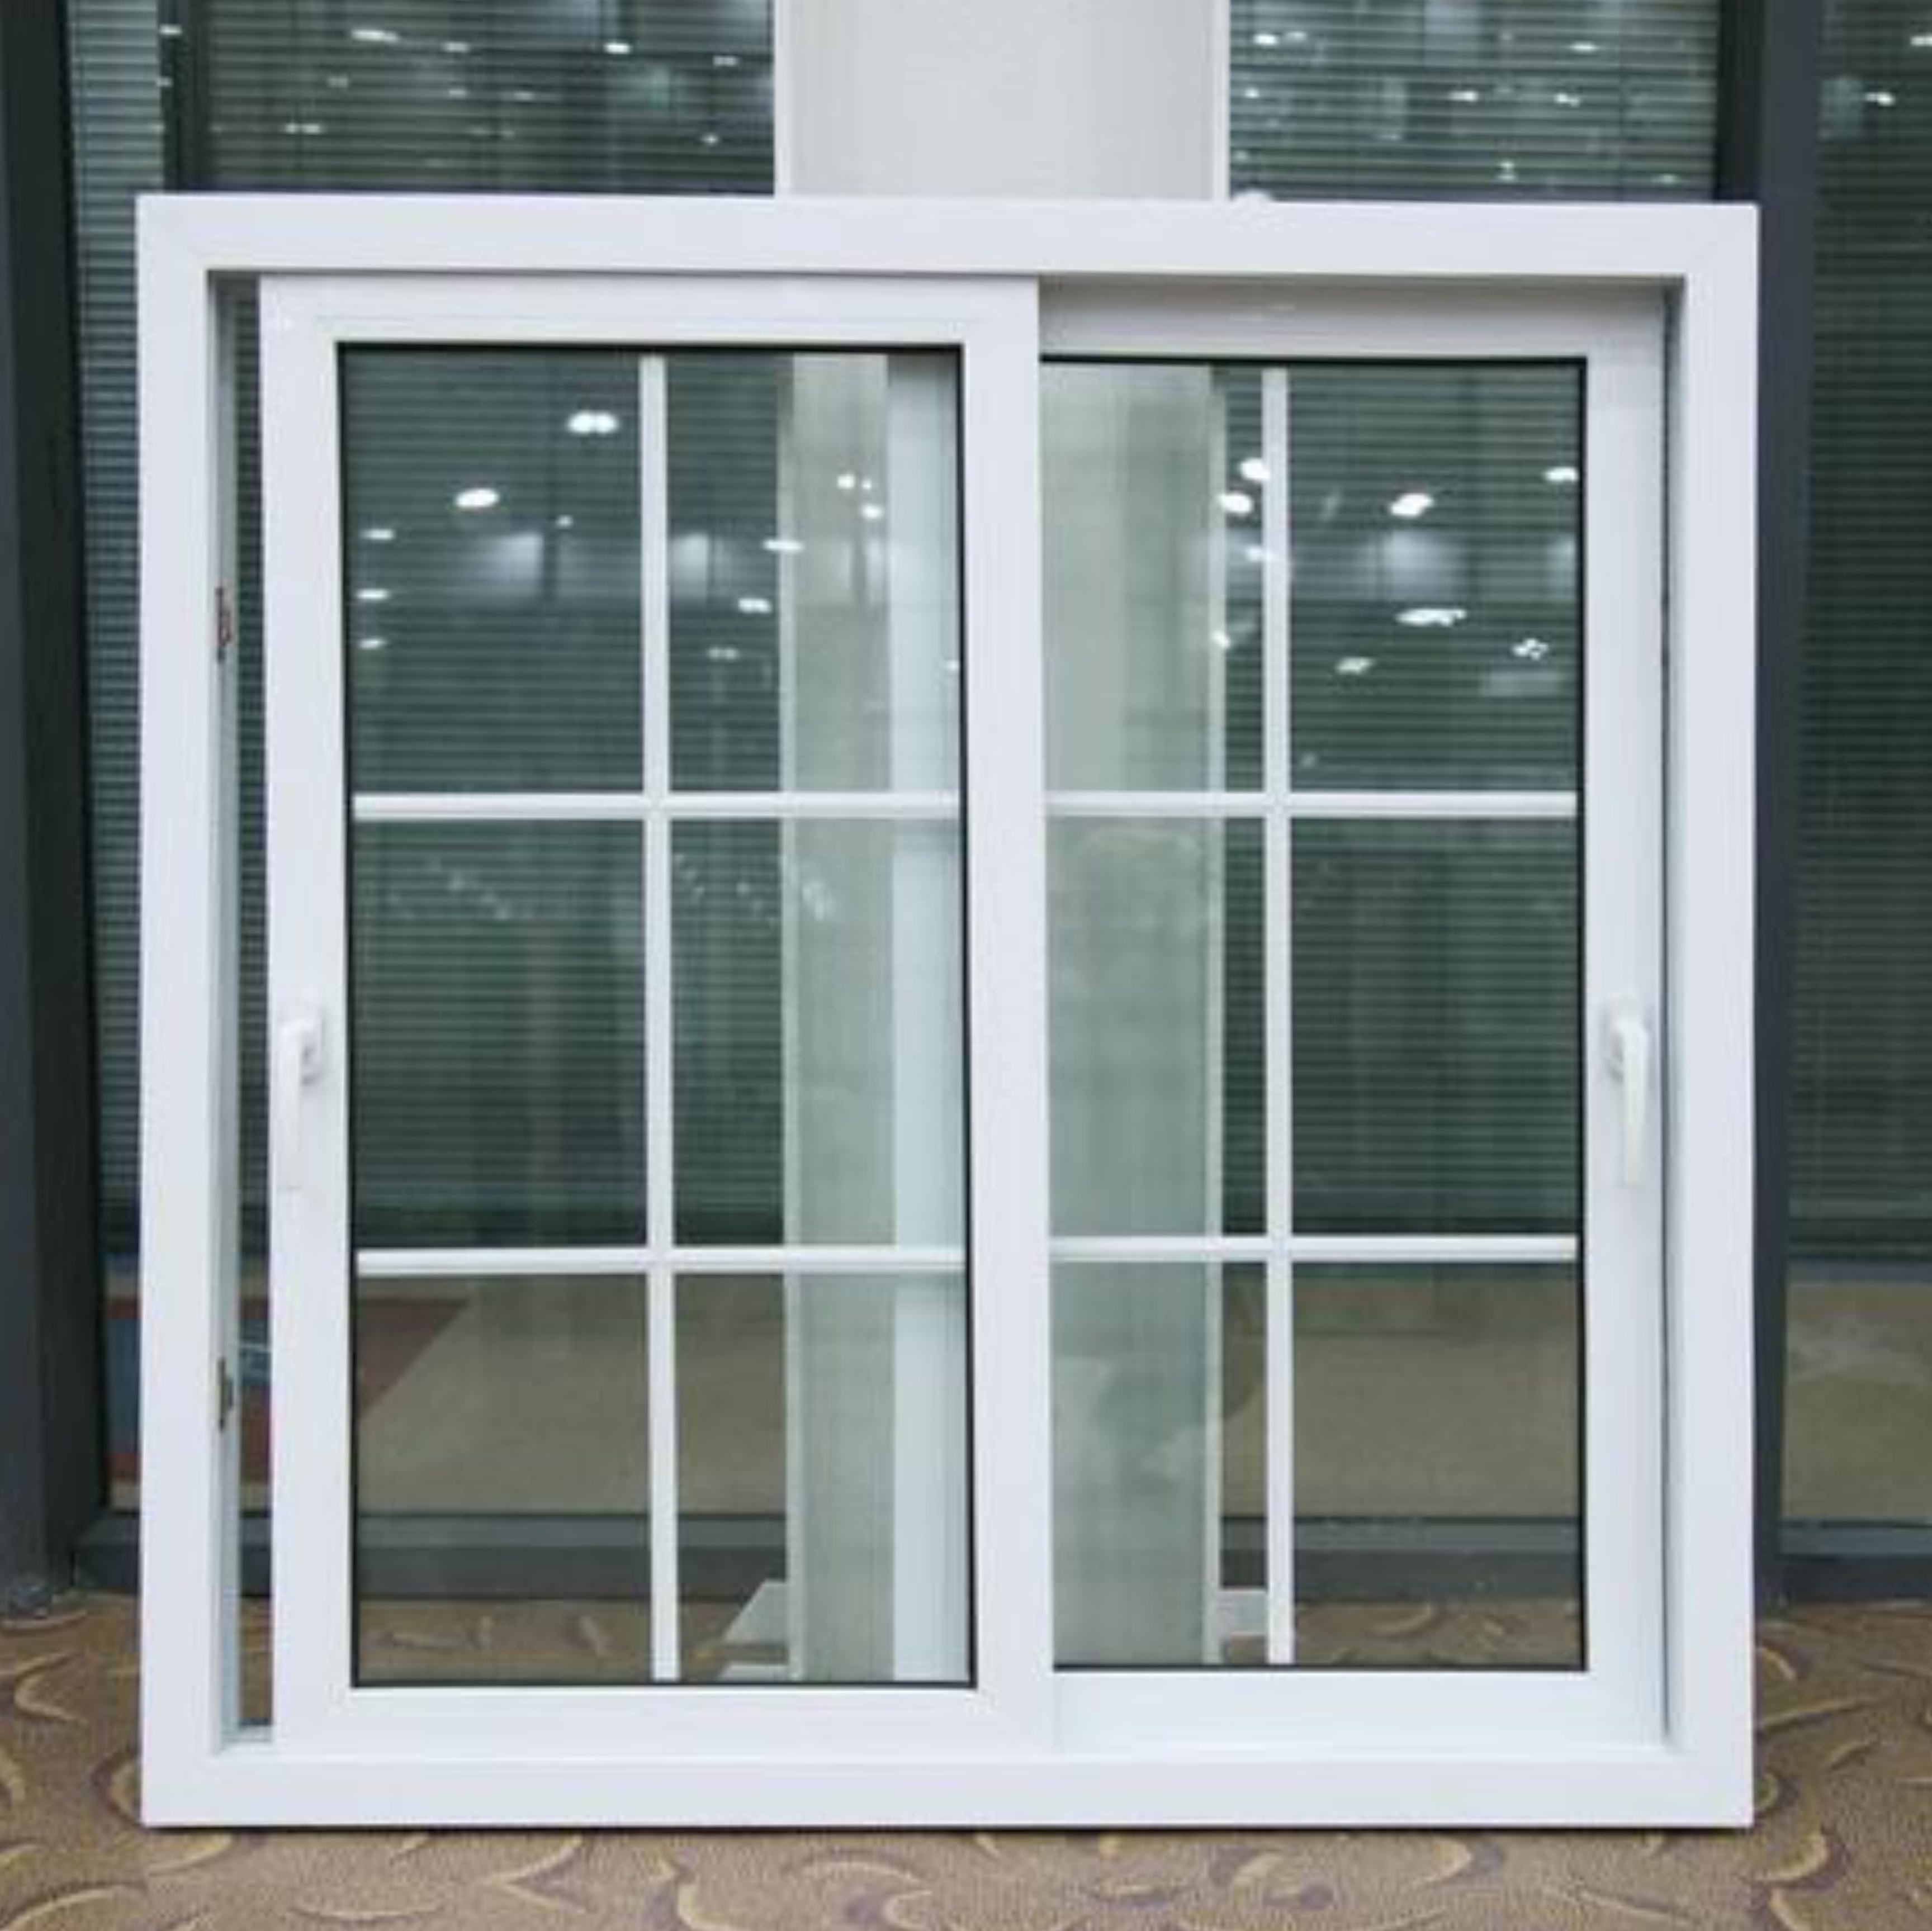 Used Commercial Glass Doors Aluminum Frame Fixed Big Window